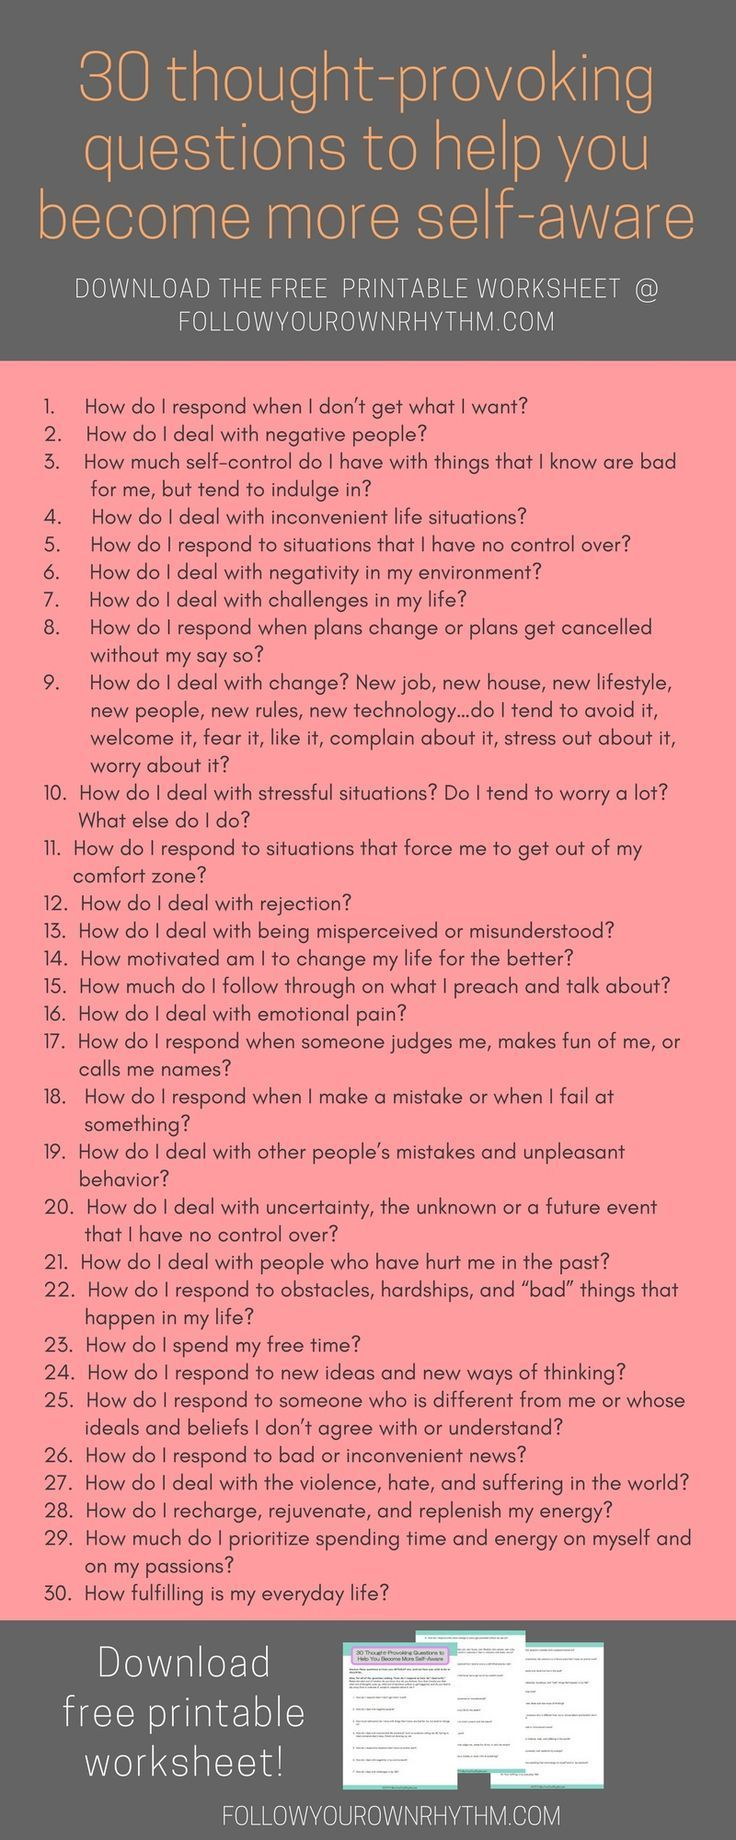 30 Thought Provoking Questions To Become More Self Aware Follow Your Own Rhythm Self Thoughts Self Improvement